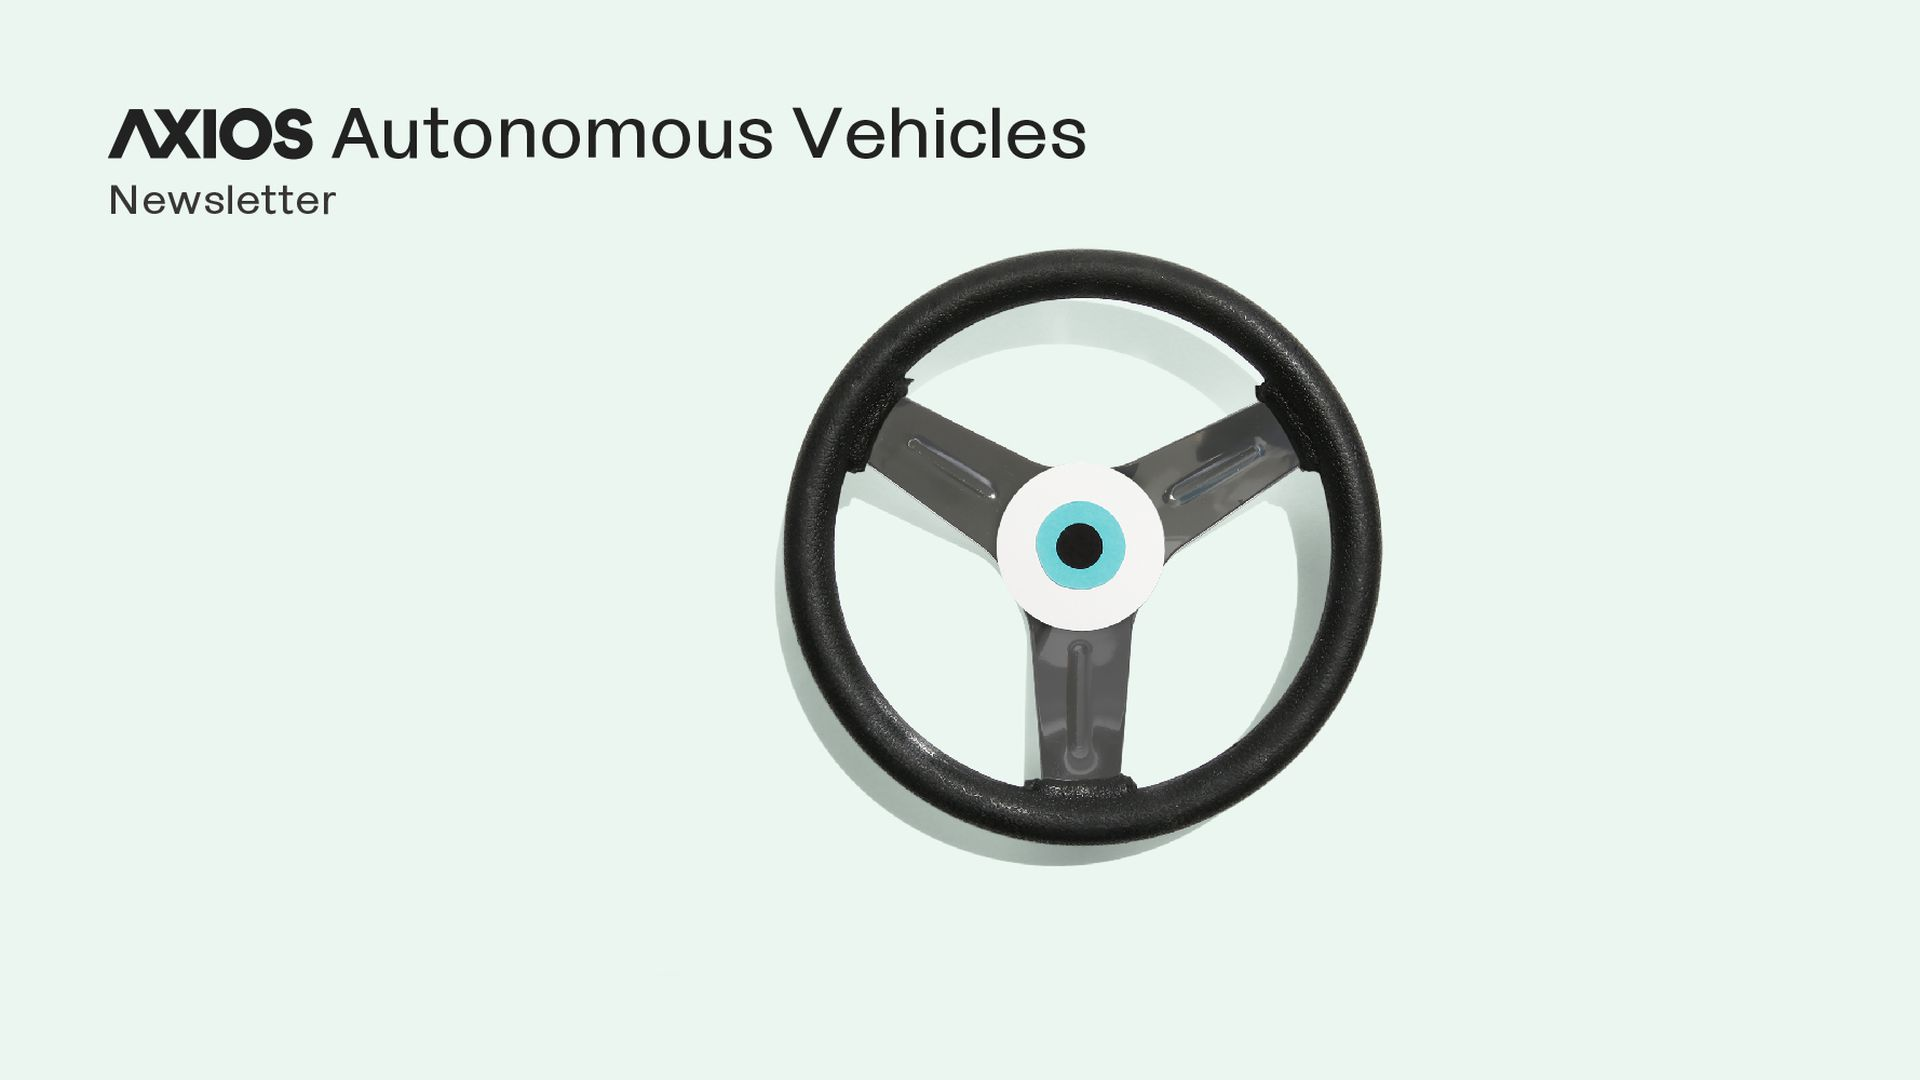 Axios Autonomous Vehicles